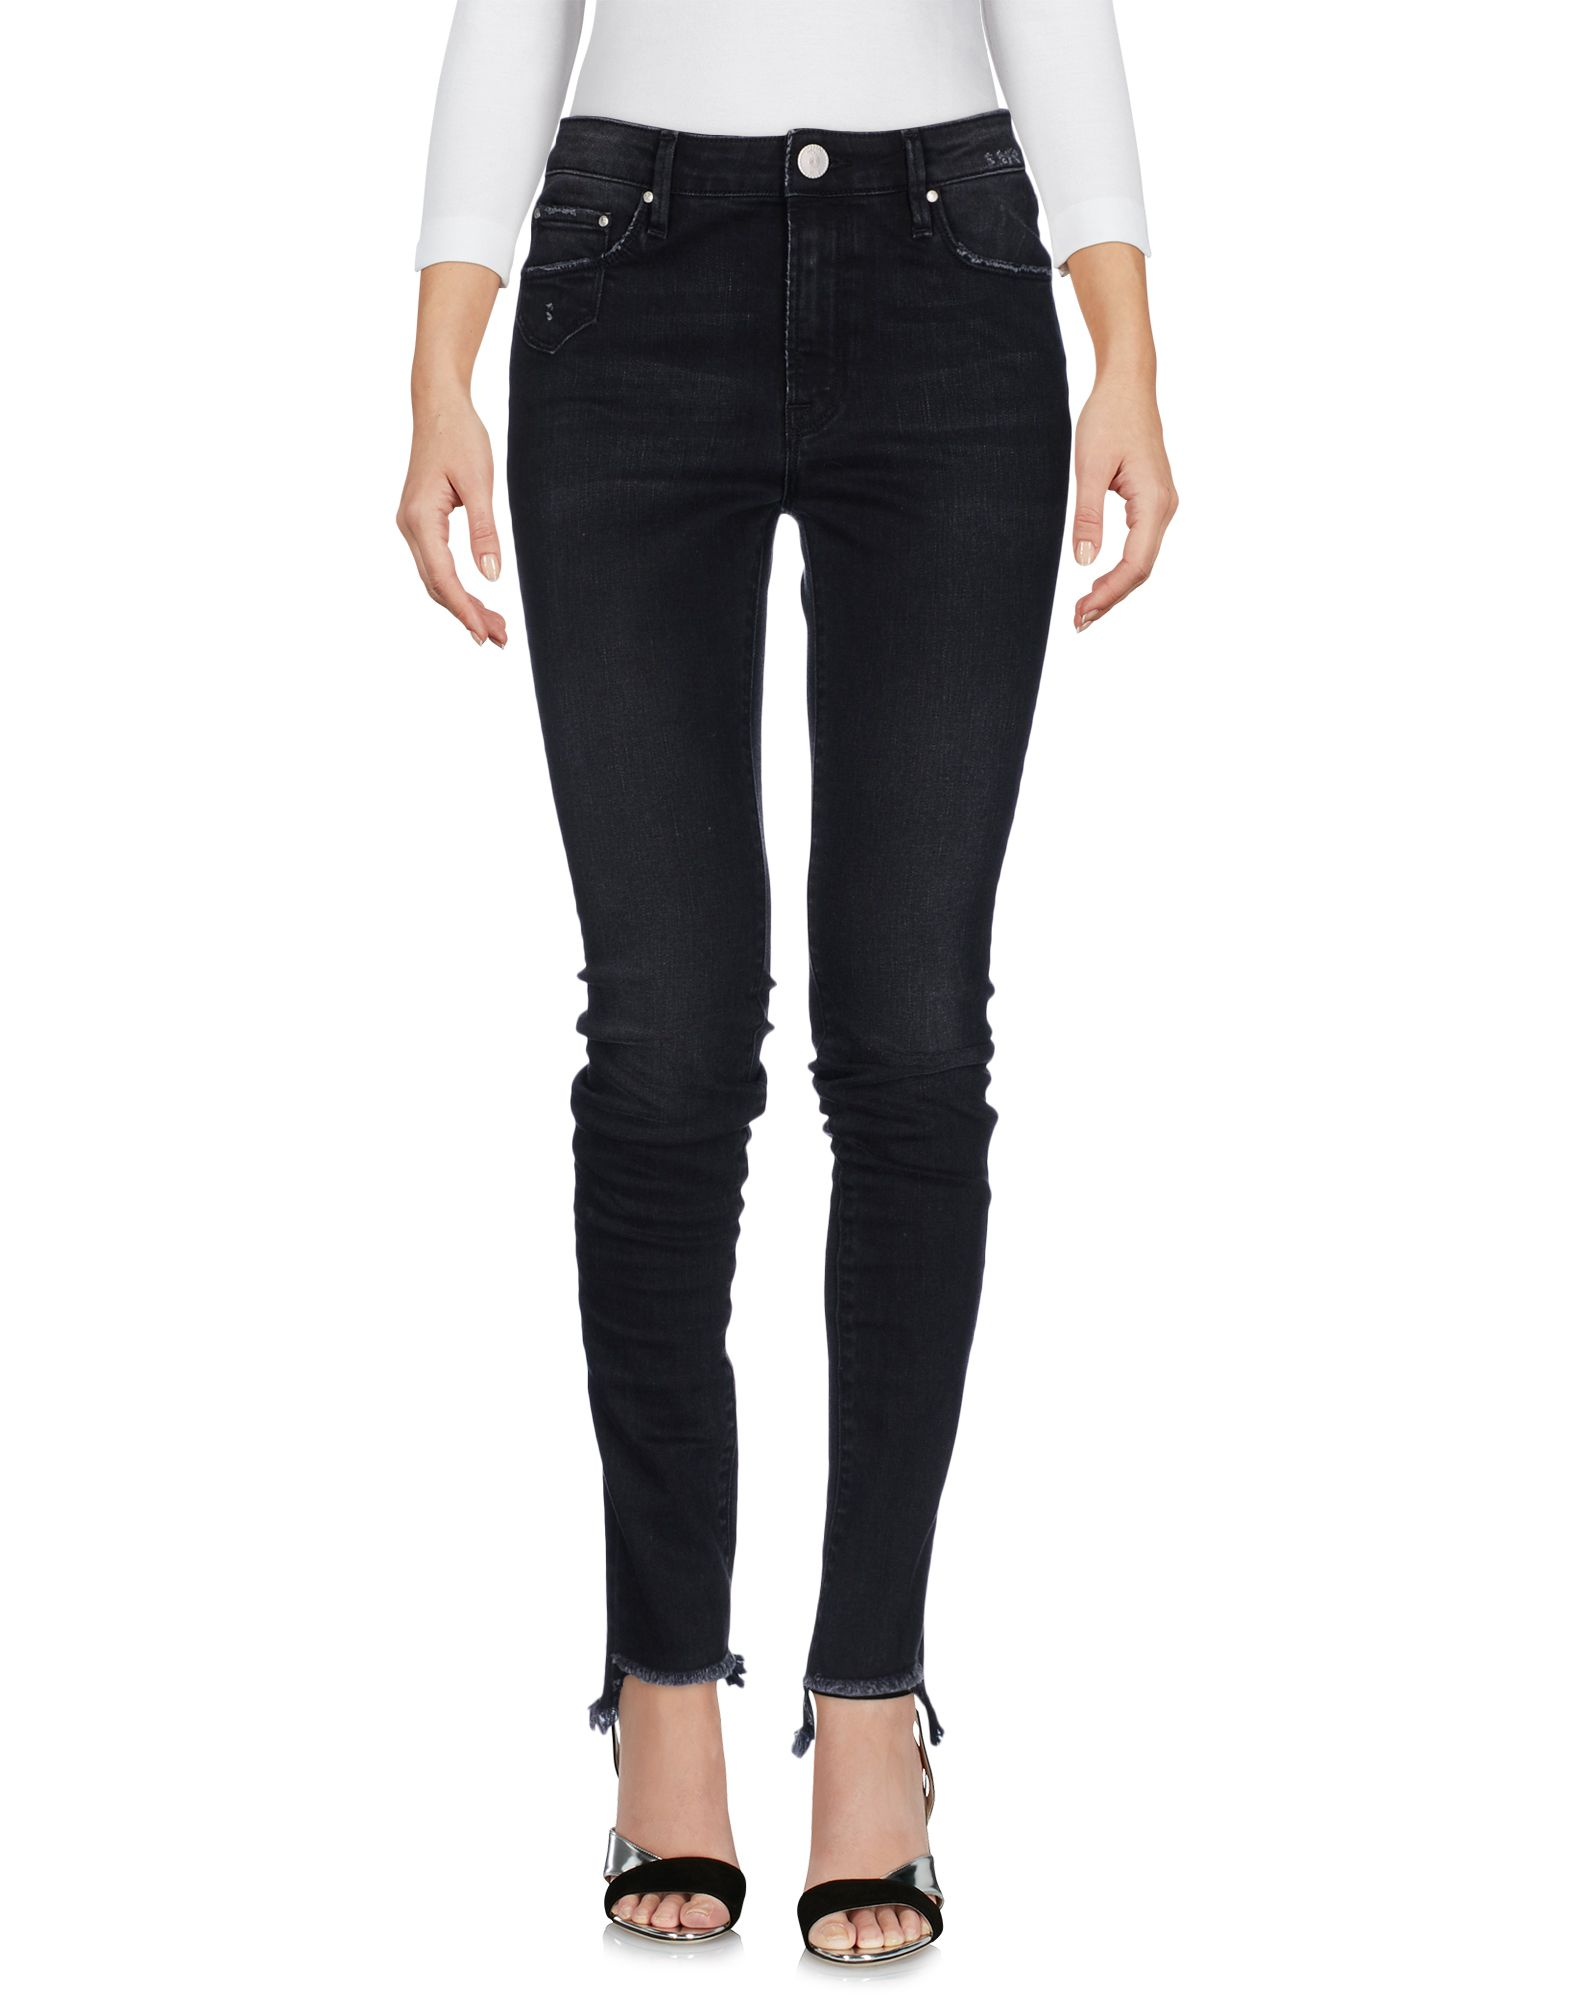 DONT CRY Denim Pants in Black